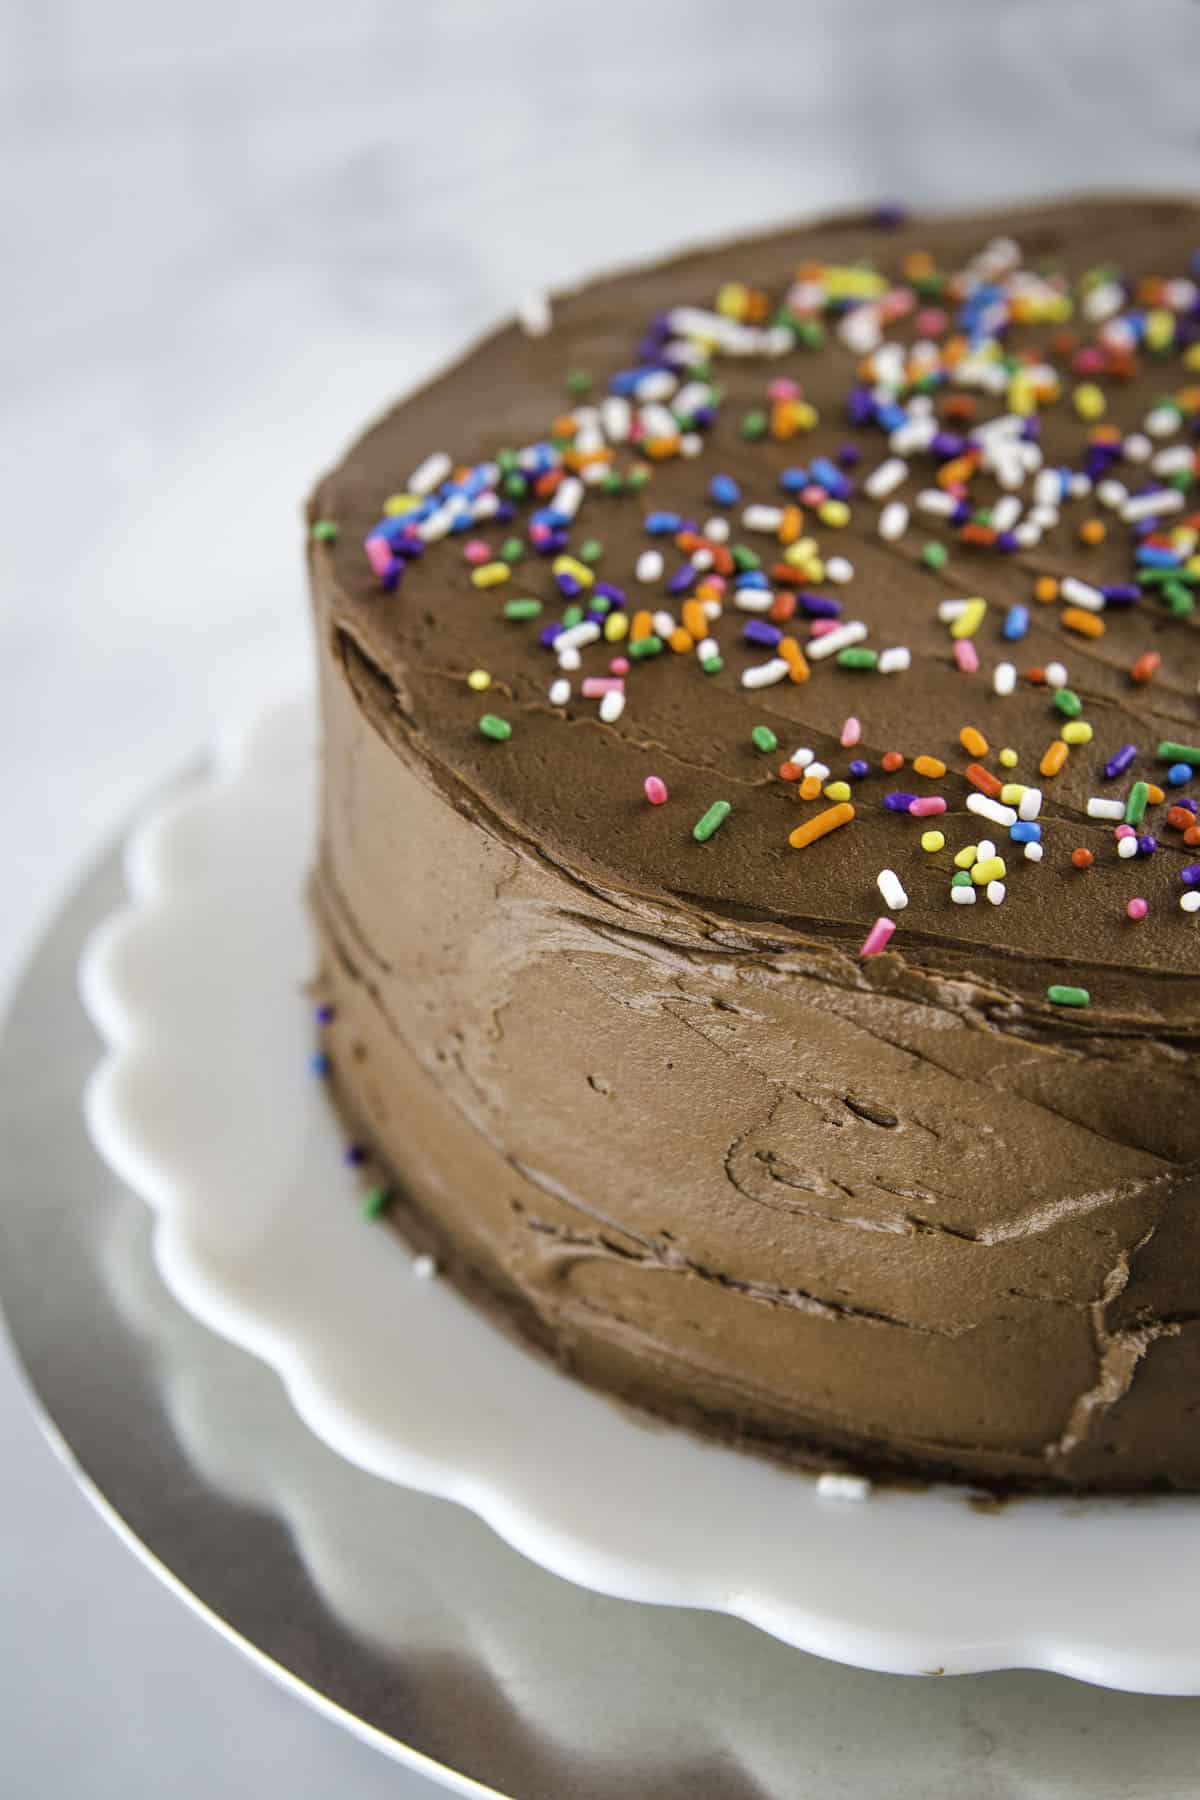 Almond flour cake frosted with chocolate frosting and colored sprinkles.